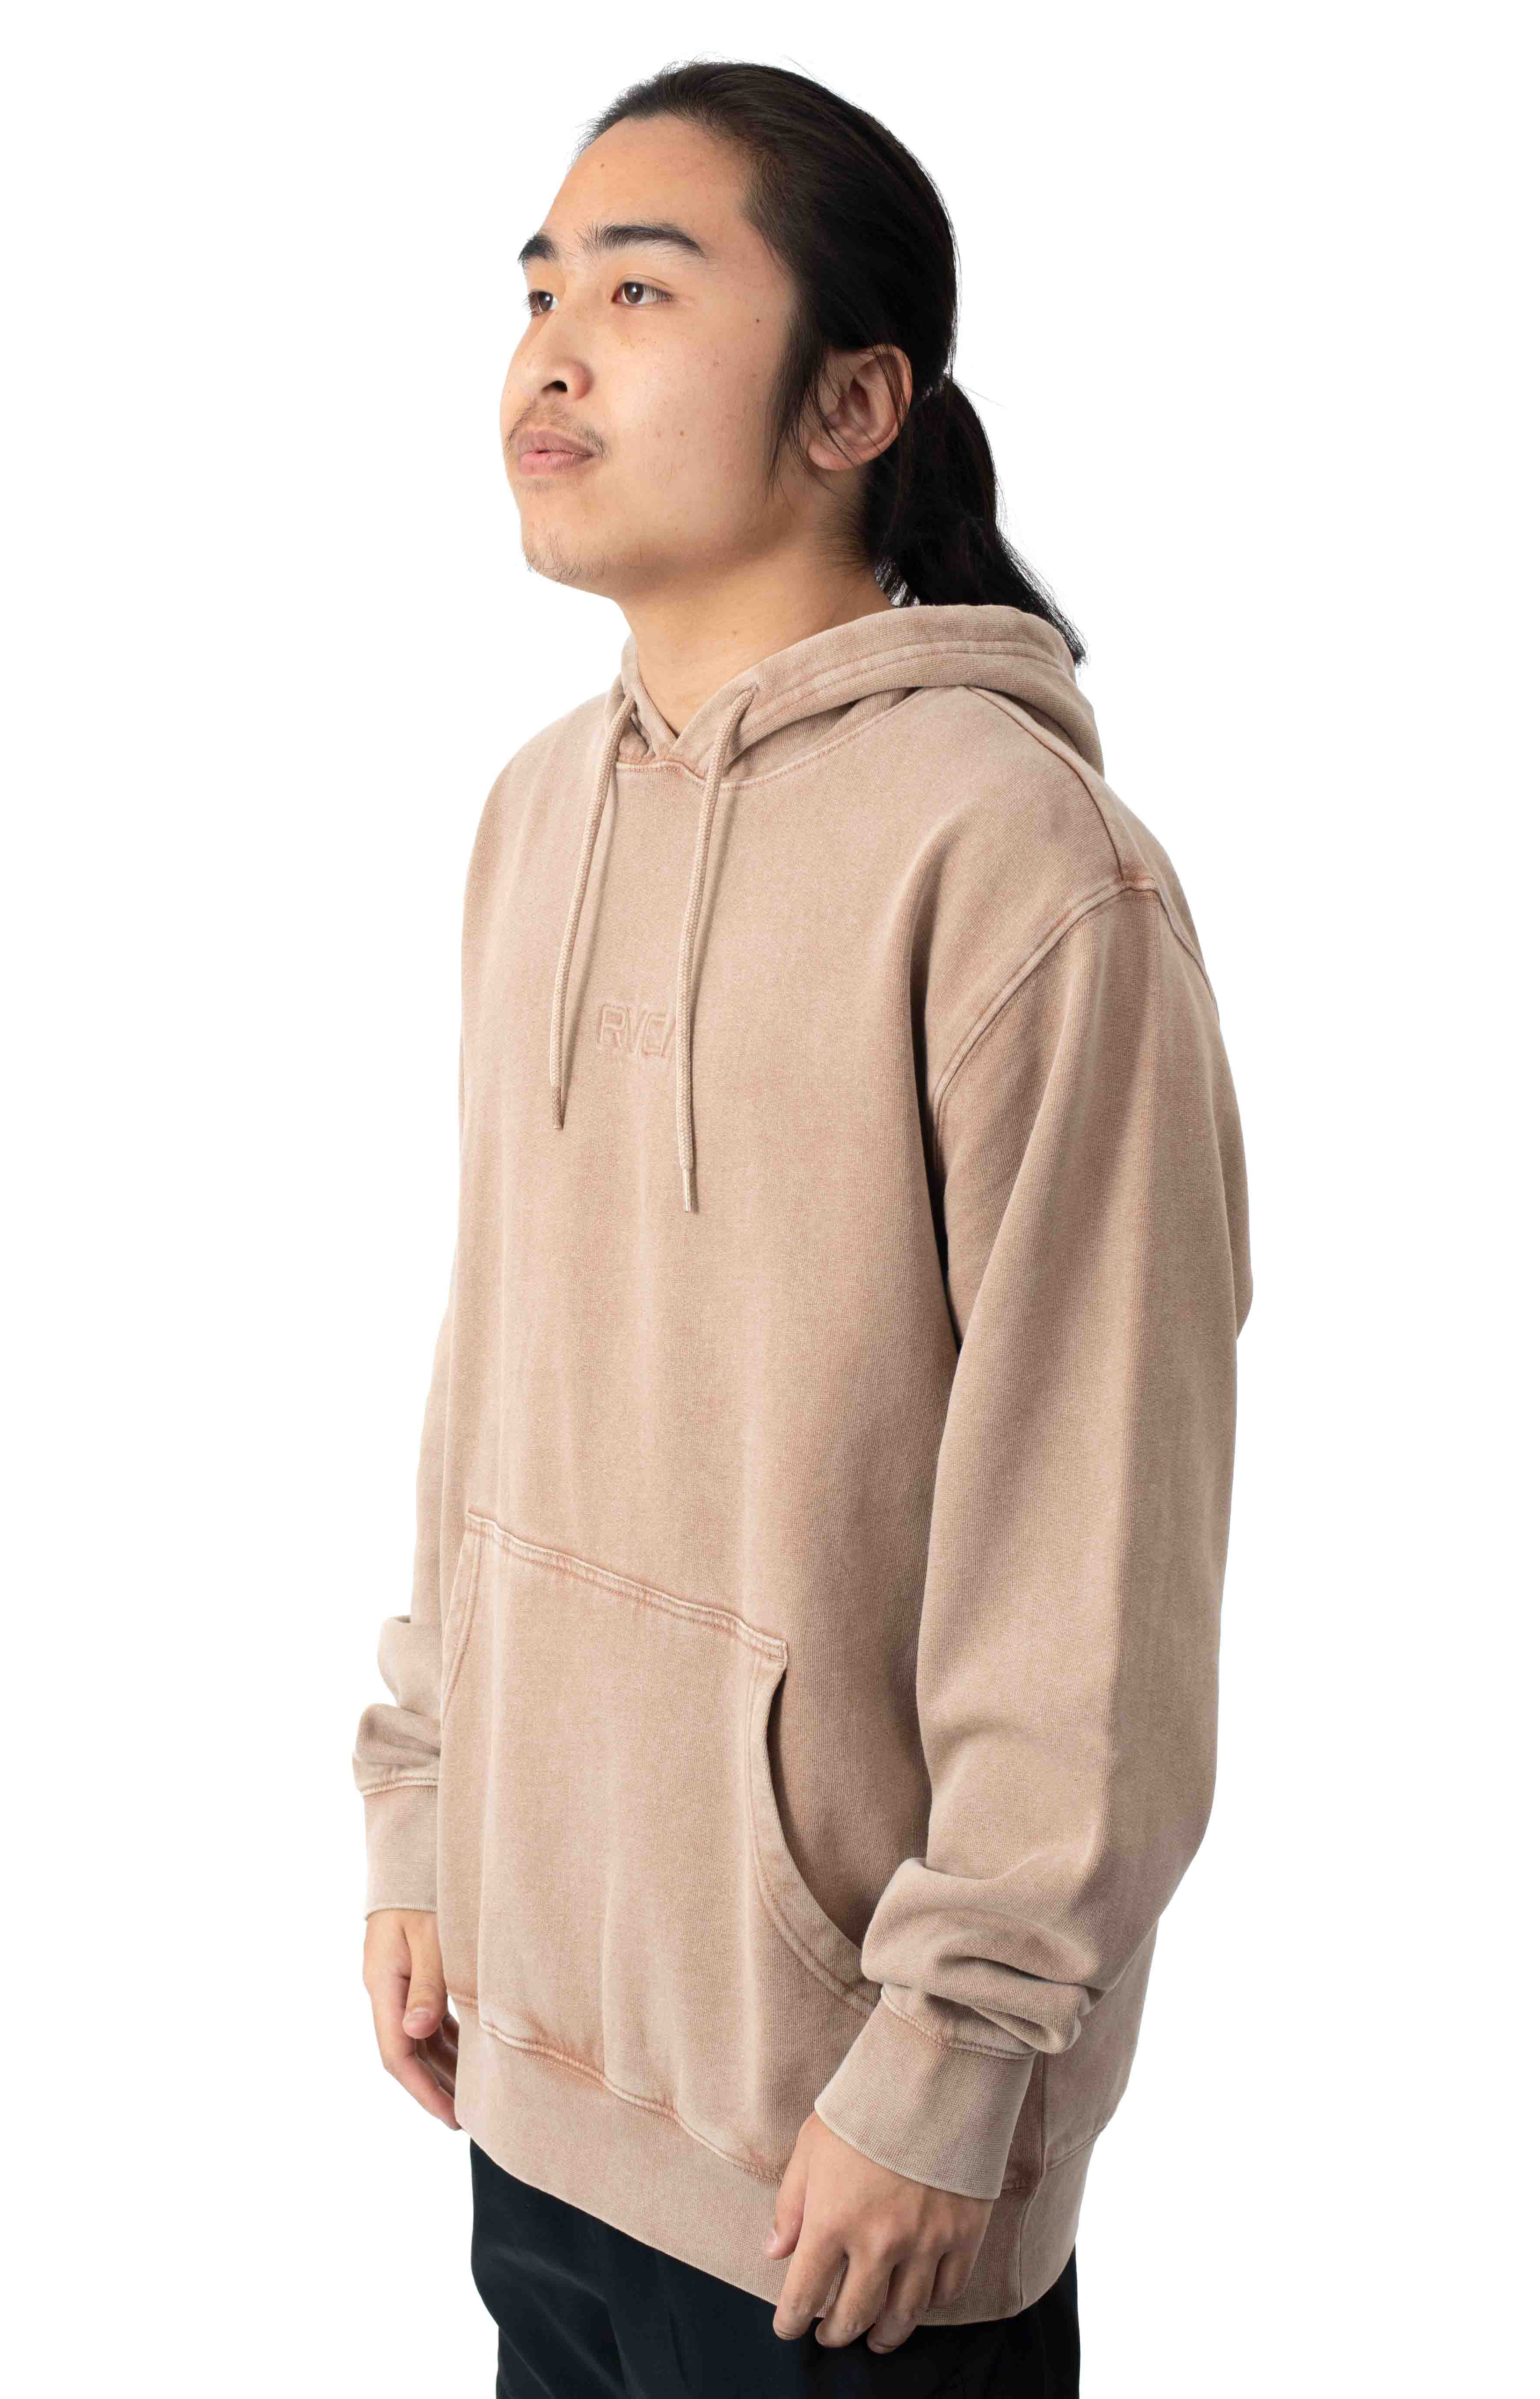 Mineral Pullover Hoodie - Camel  2